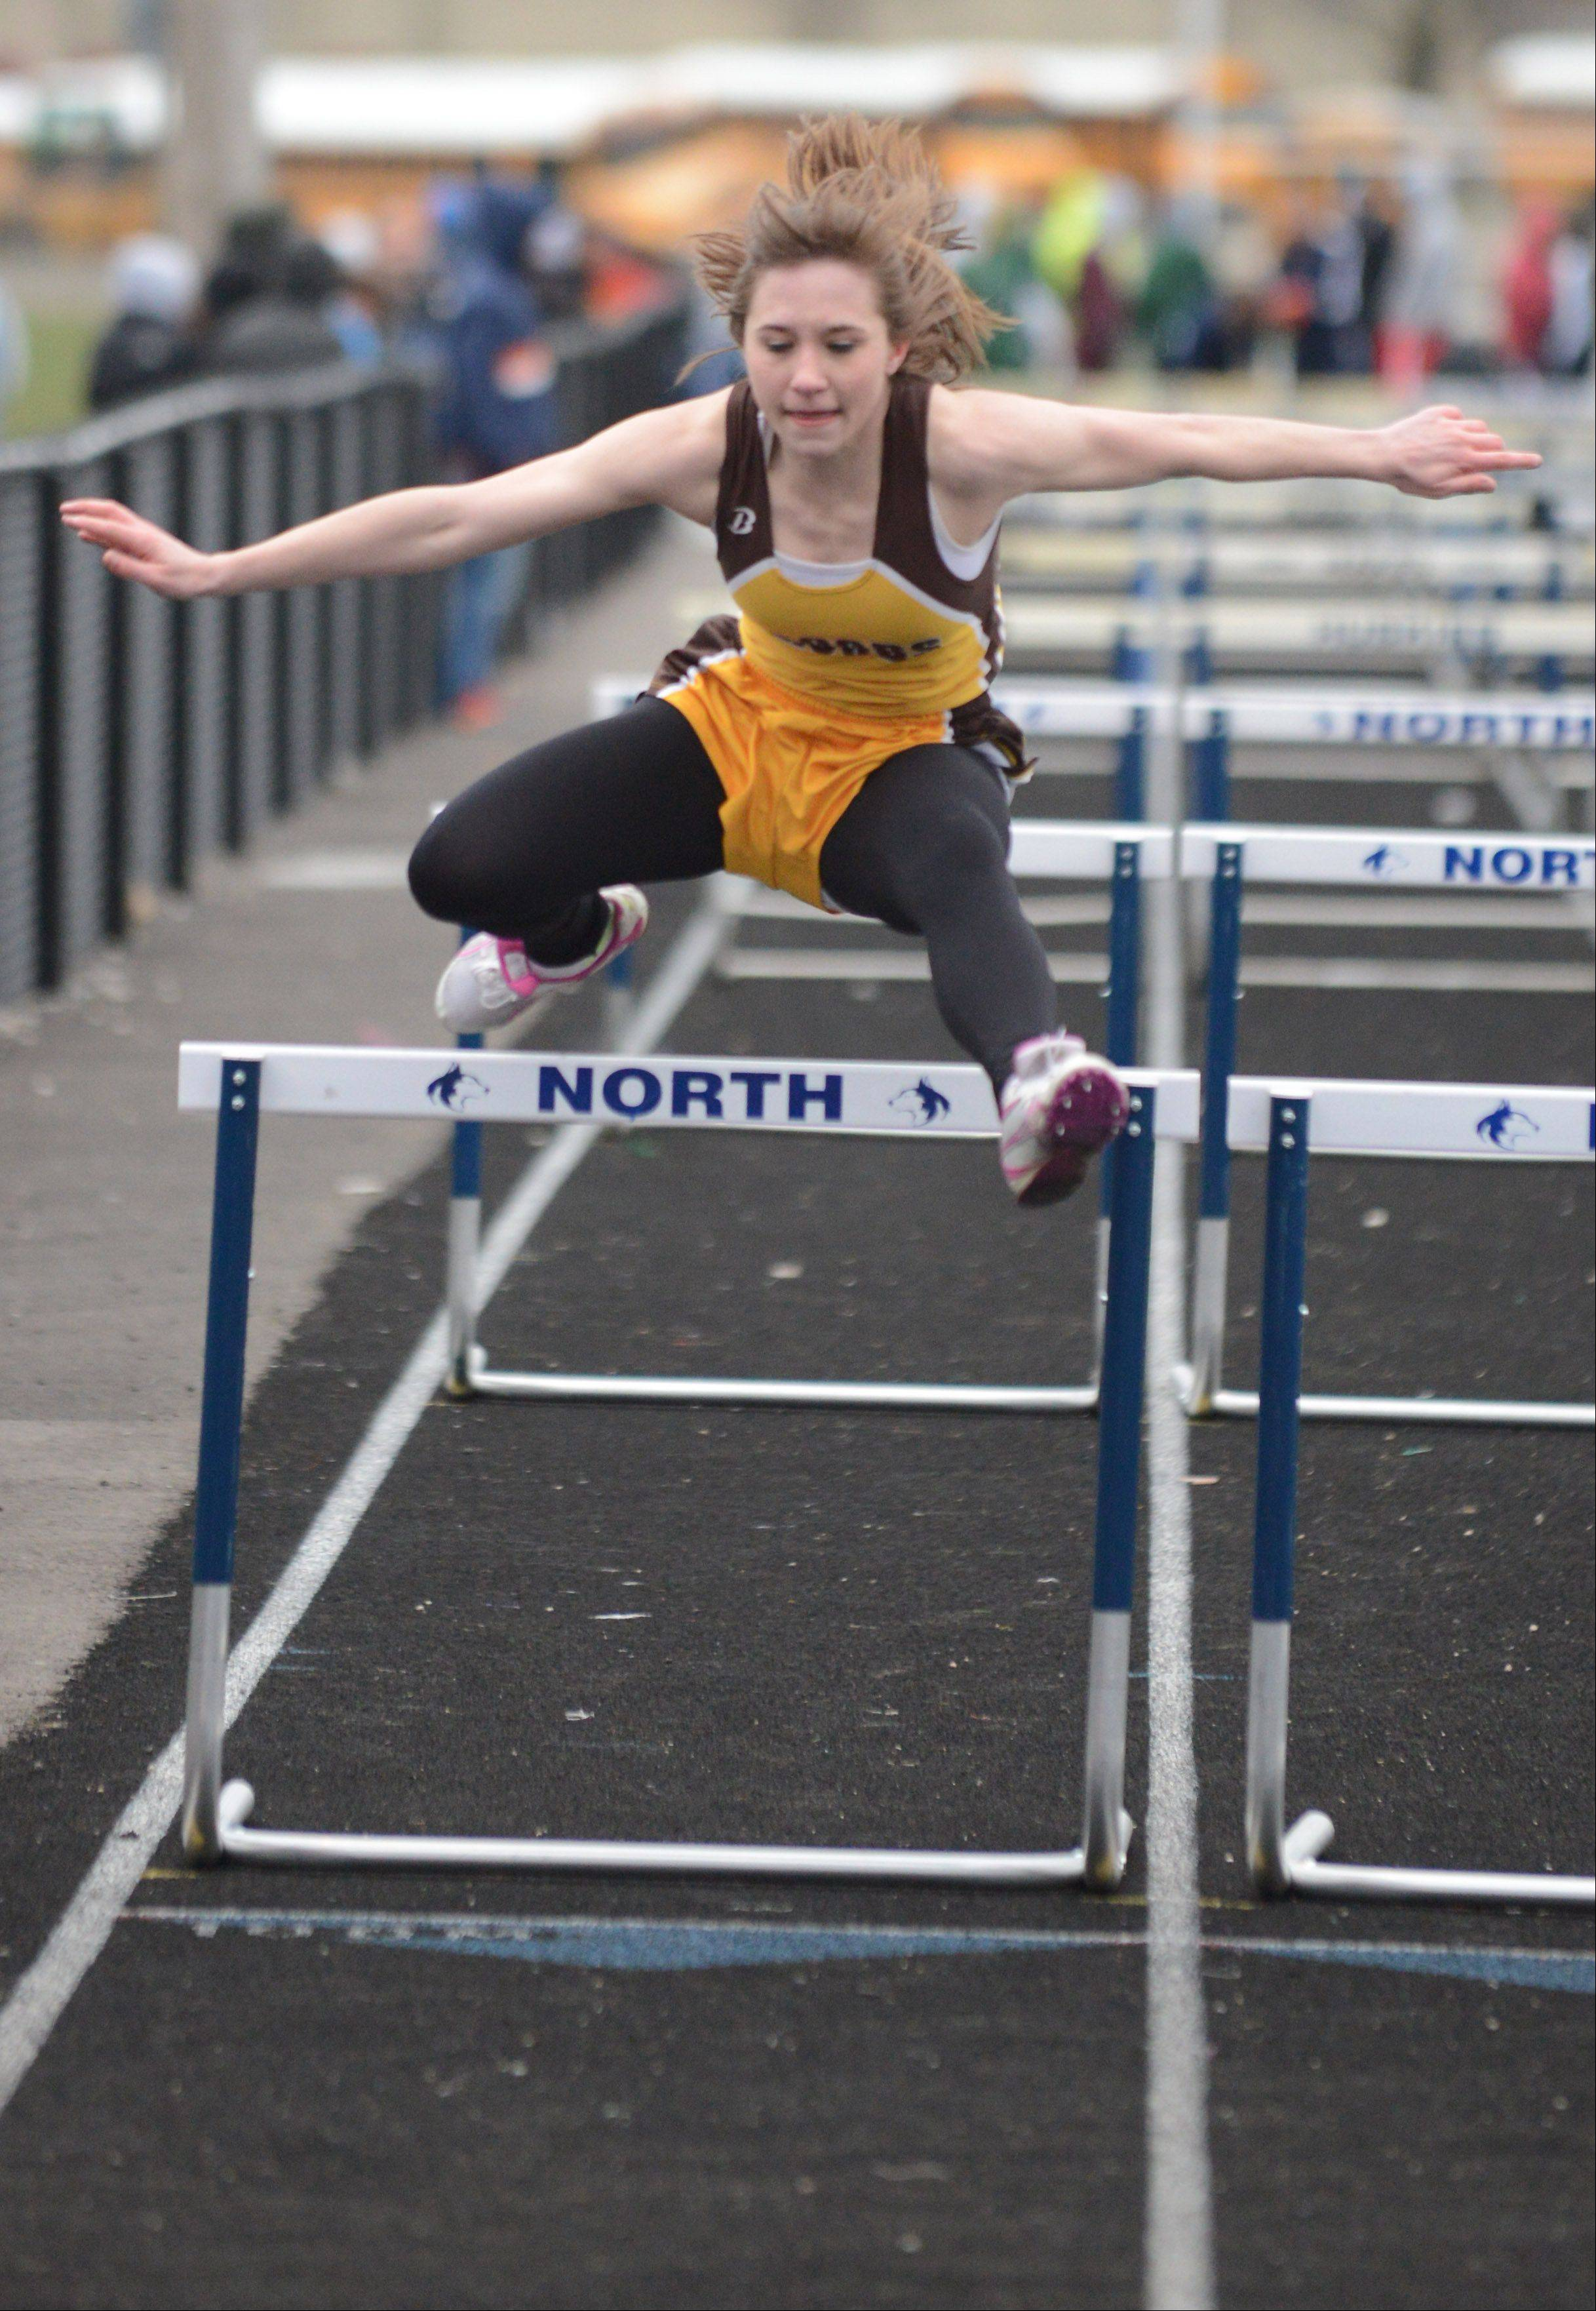 Kira Whittier of Jacobs in the 100-meter hurdles during the Gus Scott track meet at Naperville North on Friday.